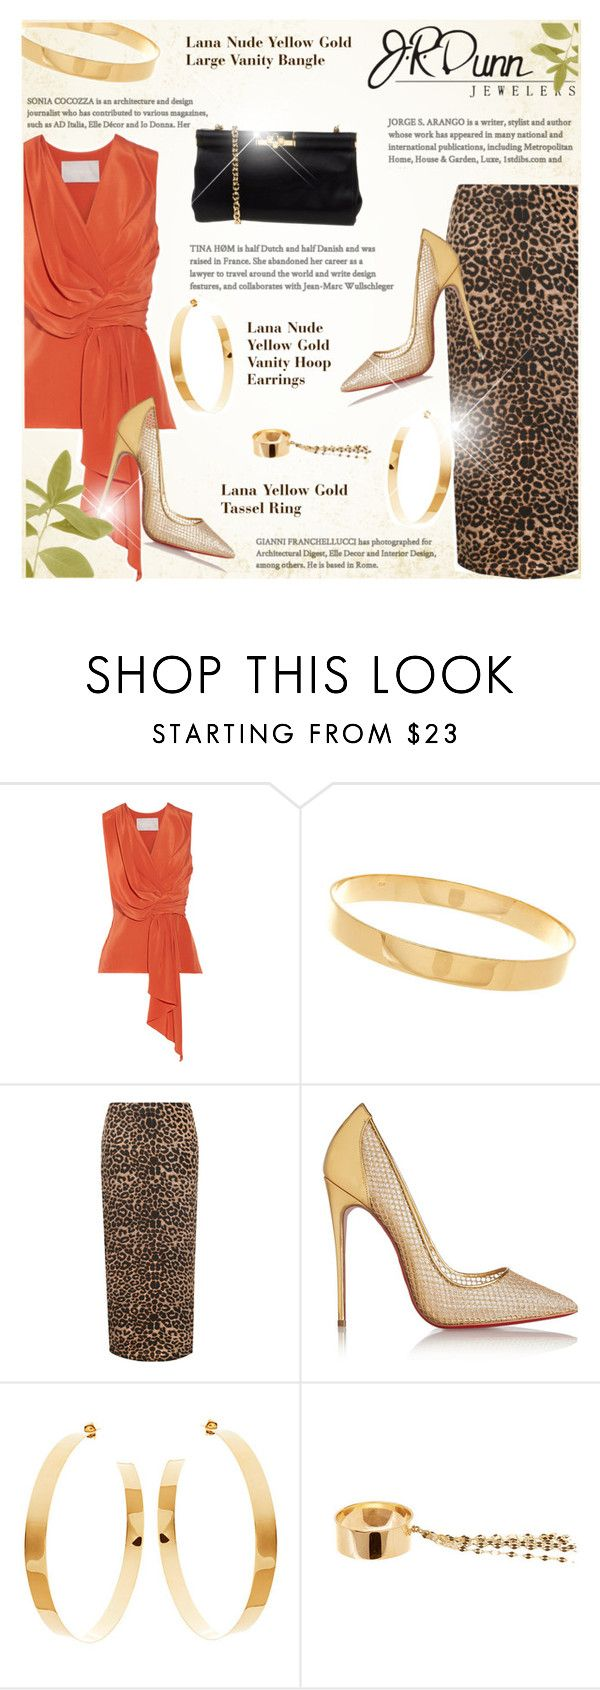 """JRDunn.com"" by monazor ❤ liked on Polyvore featuring Dunn, Jason Wu, Lana, WearAll, Christian Louboutin and Dolce&Gabbana"